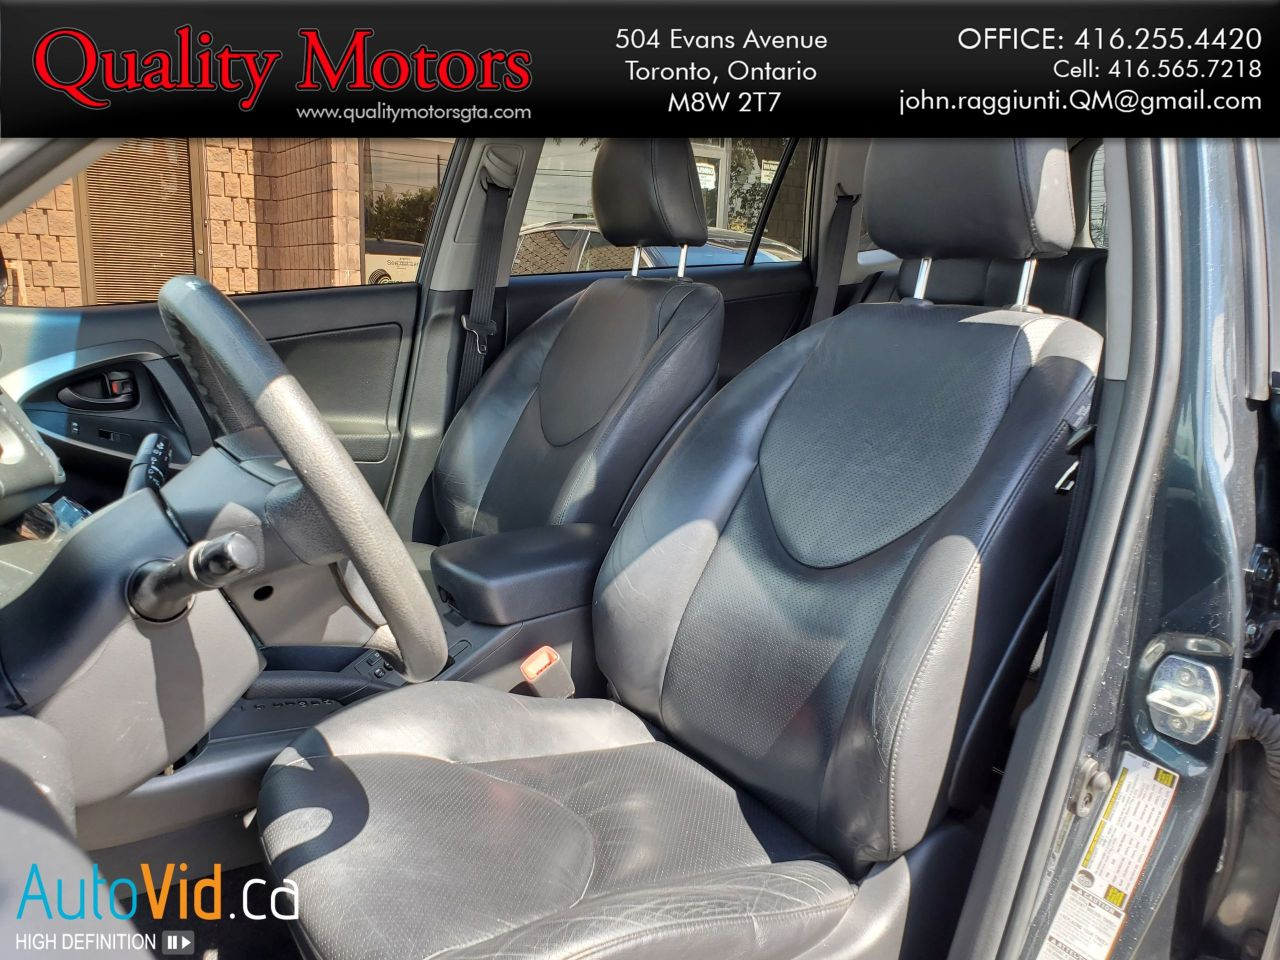 2011 Toyota RAV4 | Quality Motors